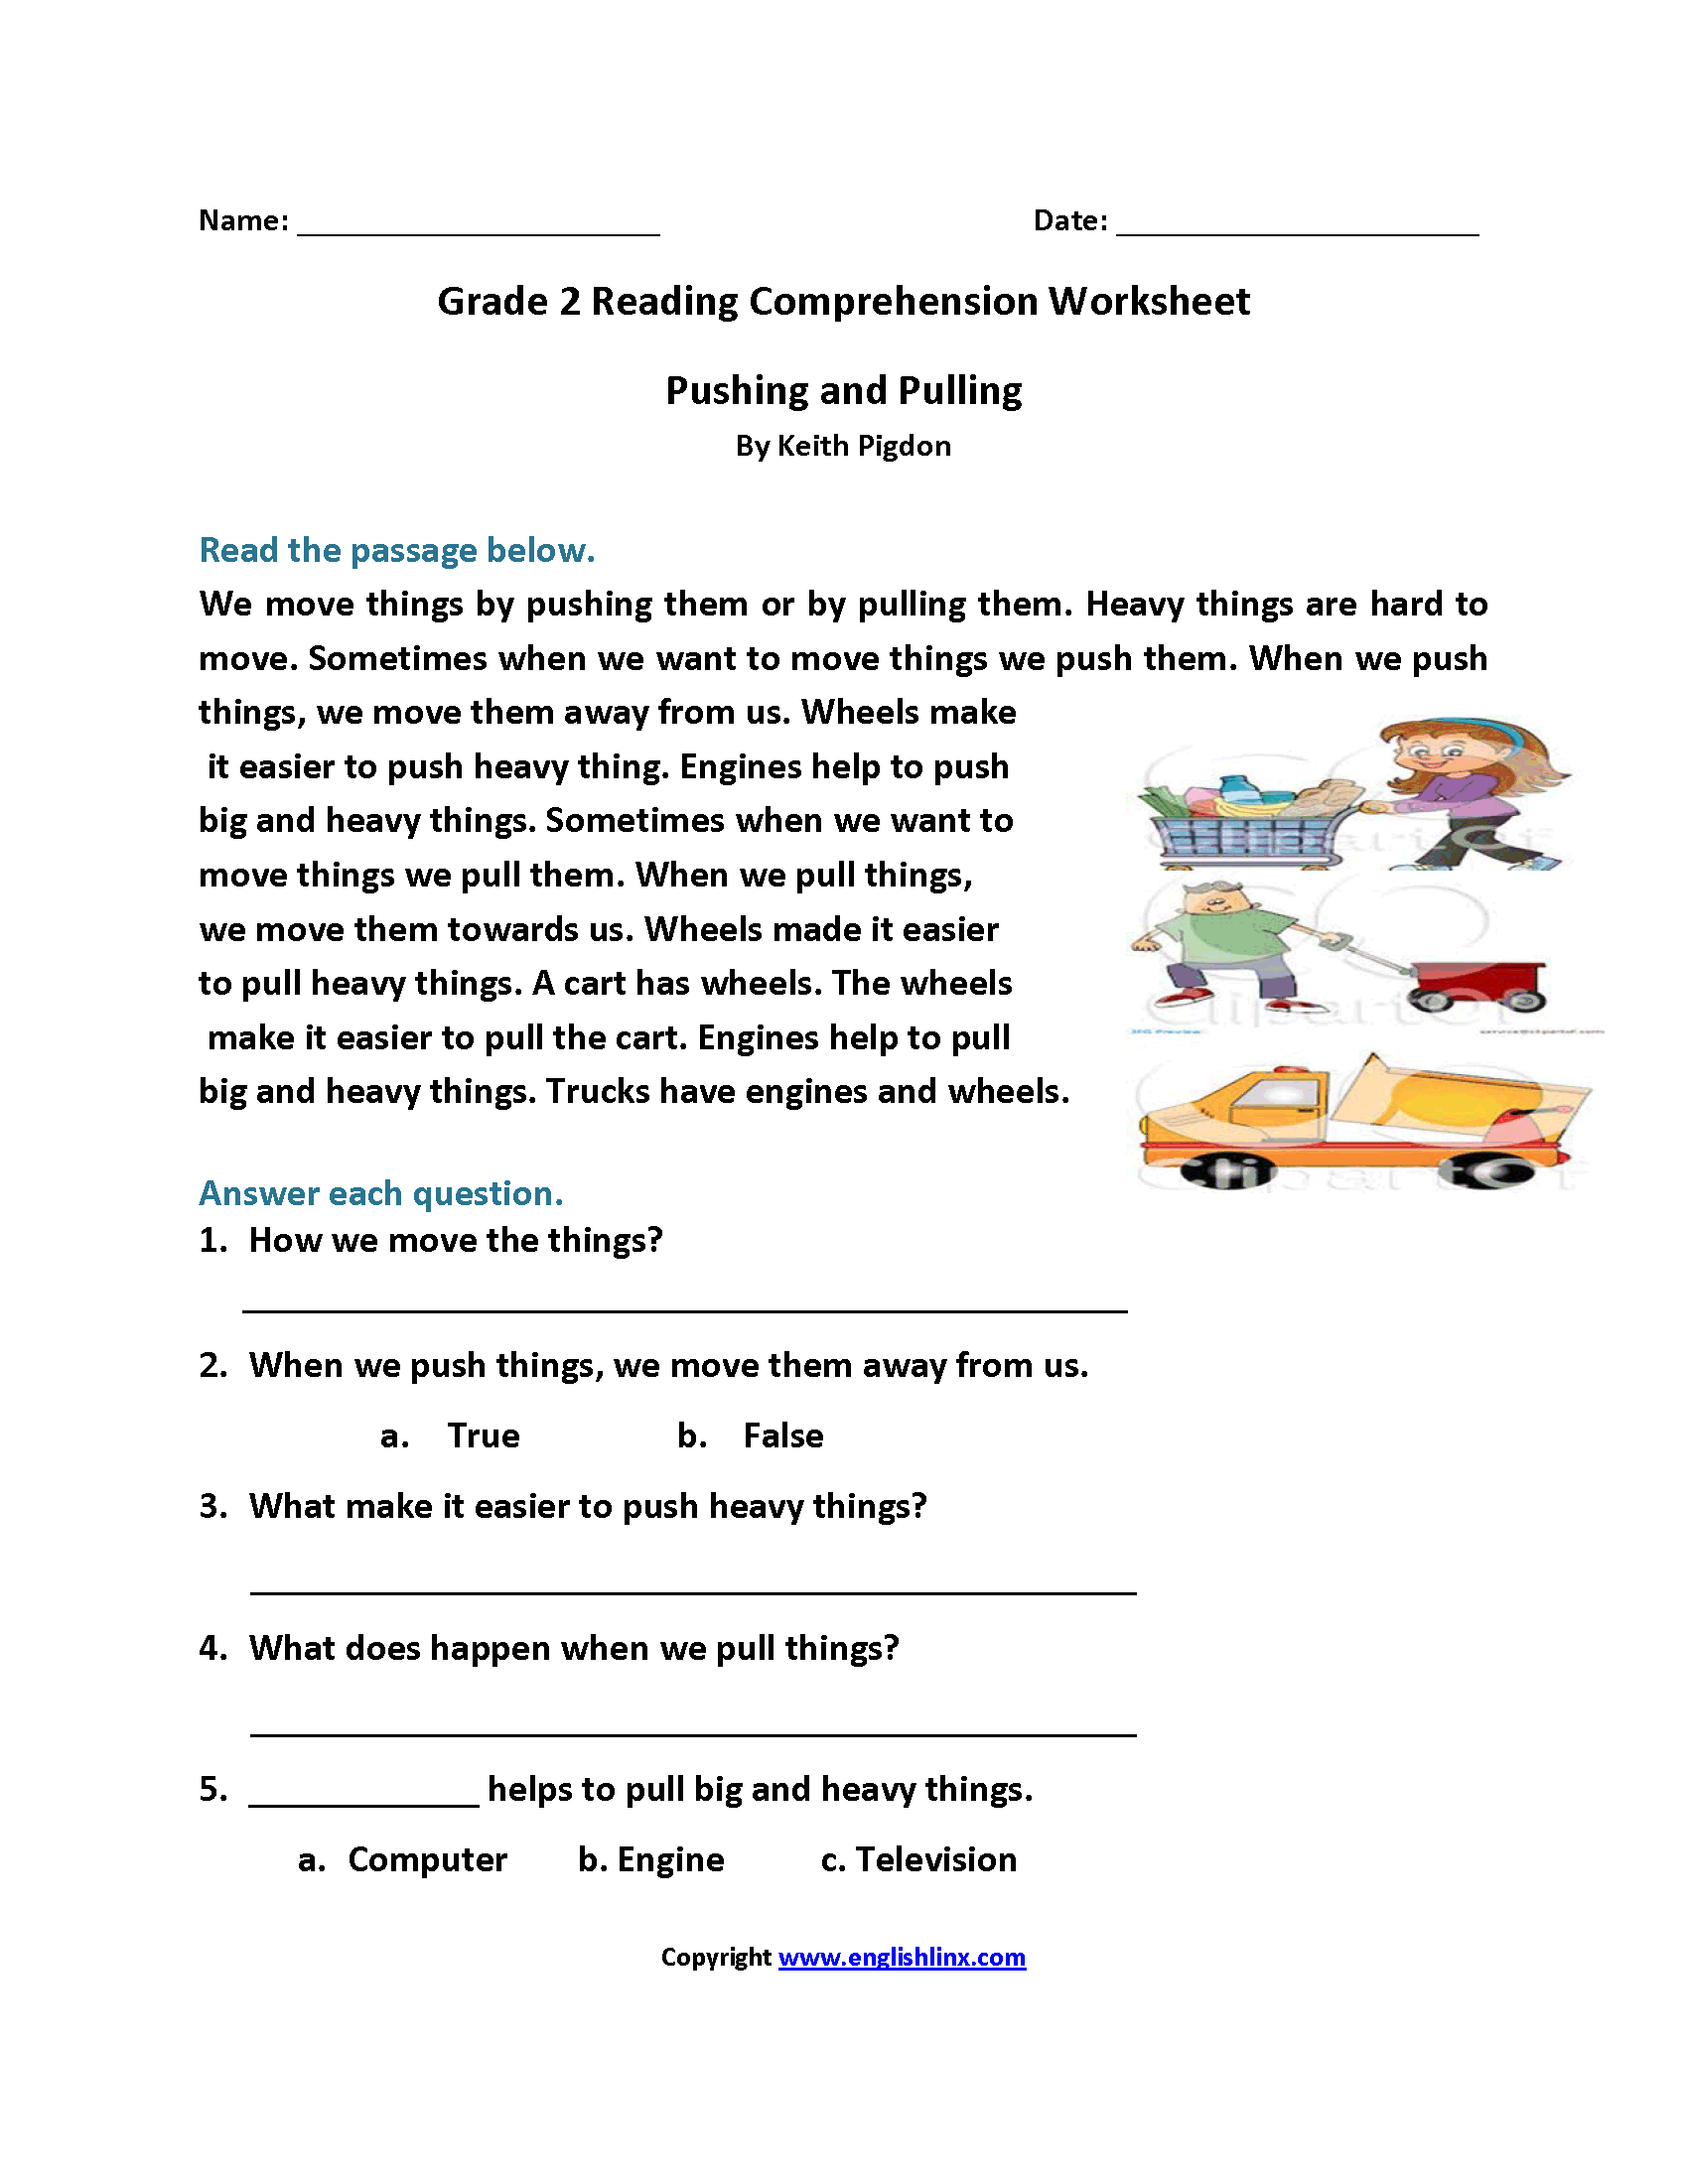 Free English Reading Comprehension Worksheets For Grade 2